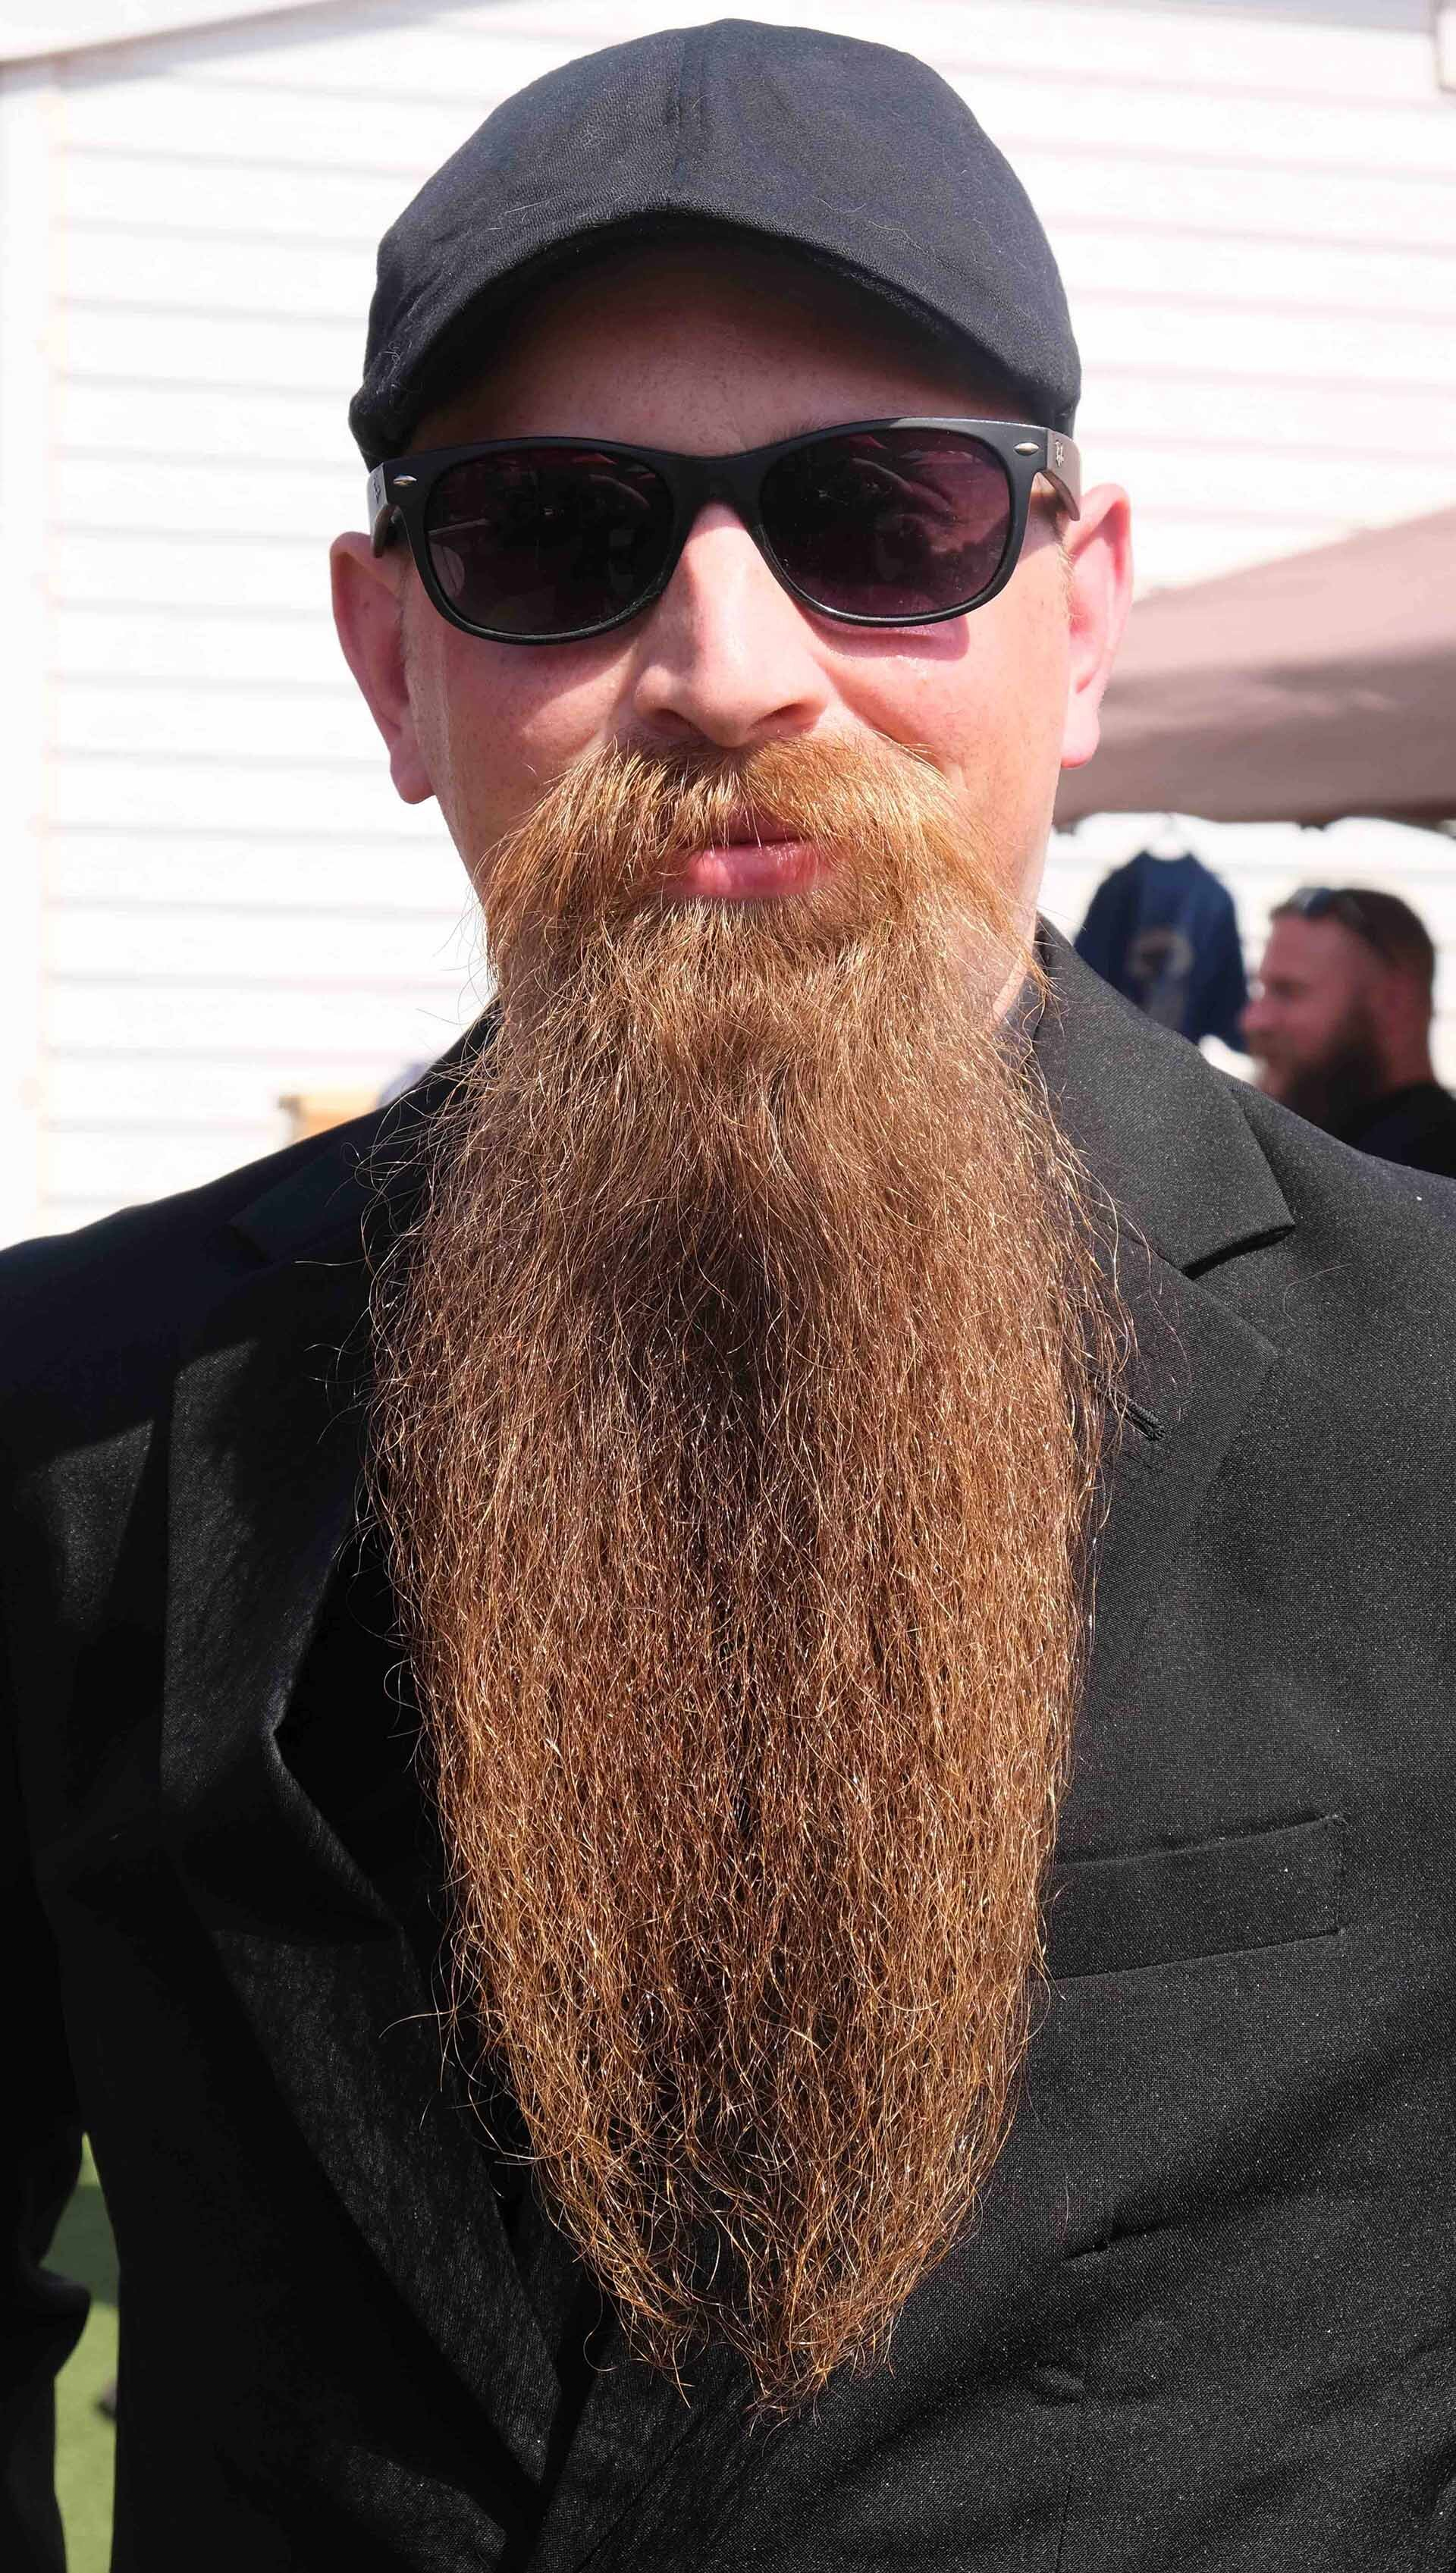 """Rising Star"" - Name: Andrew MattsonHometown: Sparta, WIOccupation: Production SupervisorClub and/or Product Affiliation: Minnesota Beard & Moustache CoalitionHow long have you been bearding? 2 YearsHave you won any awards? 12 1st, 11 2nd, and 2 3rd.Why do you do it and/or what is your favorite thing about it?I do it for the family aspect and charity. This community brought me out of my shell and allowed me to travel and meet friends."